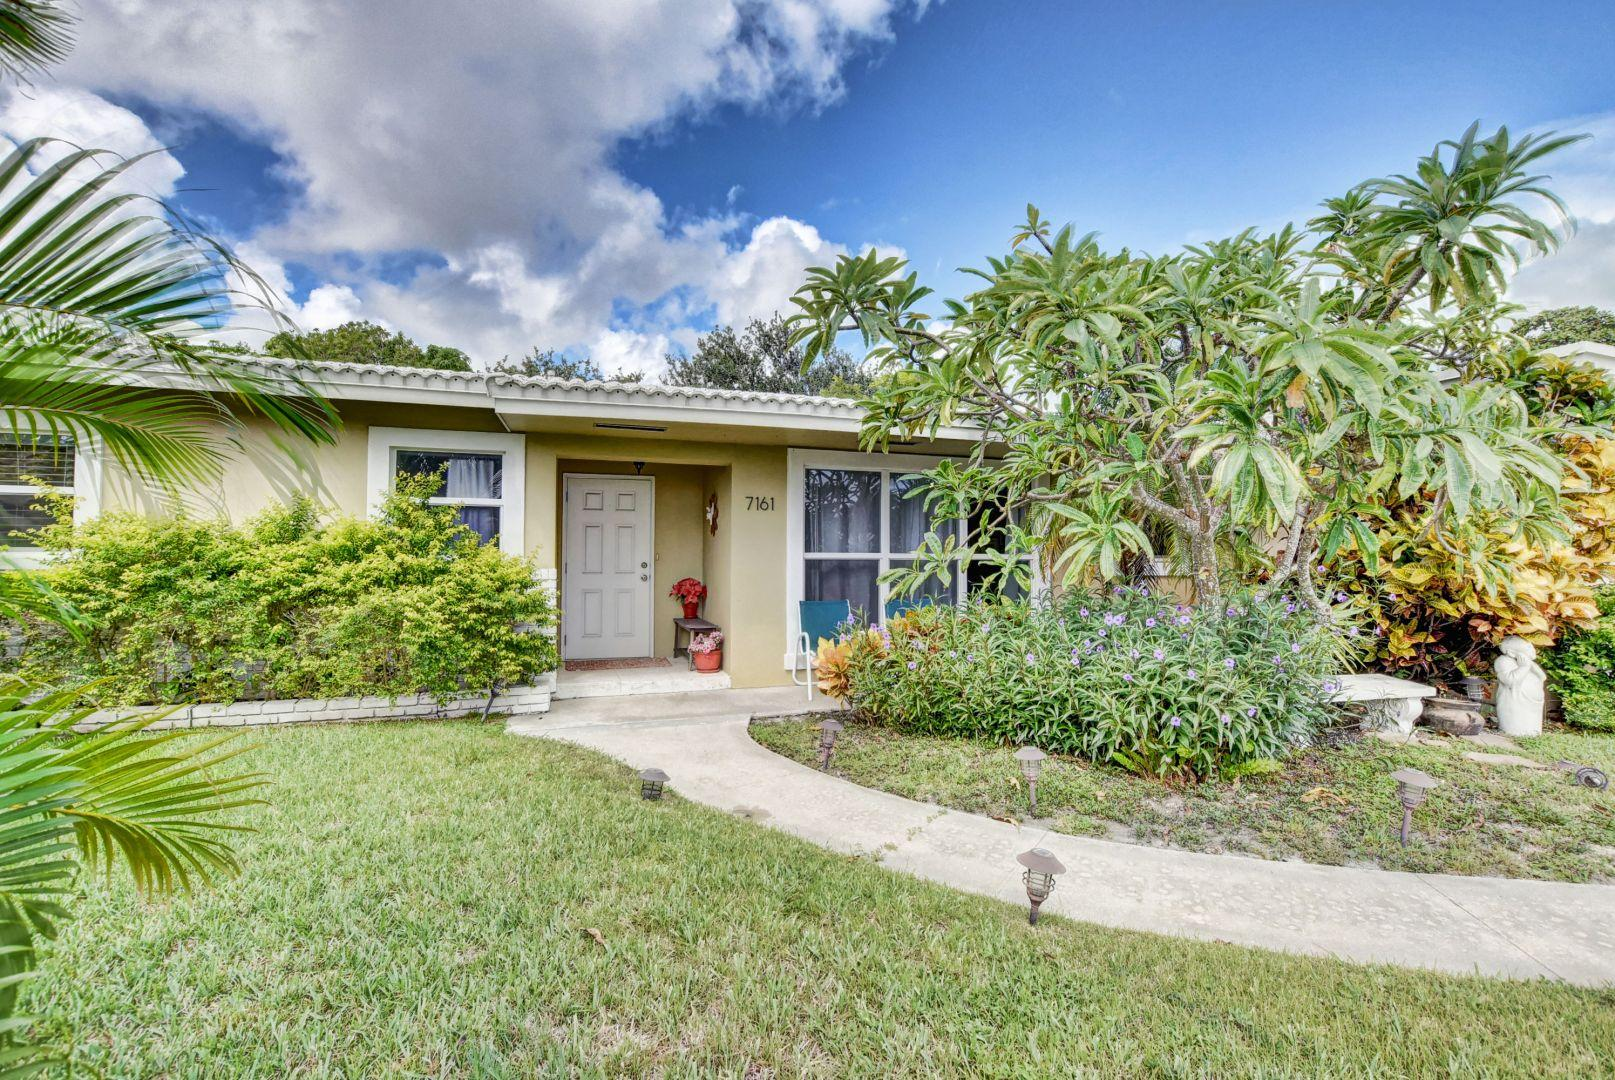 7161 Ne 7th Avenue Boca Raton, FL 33487